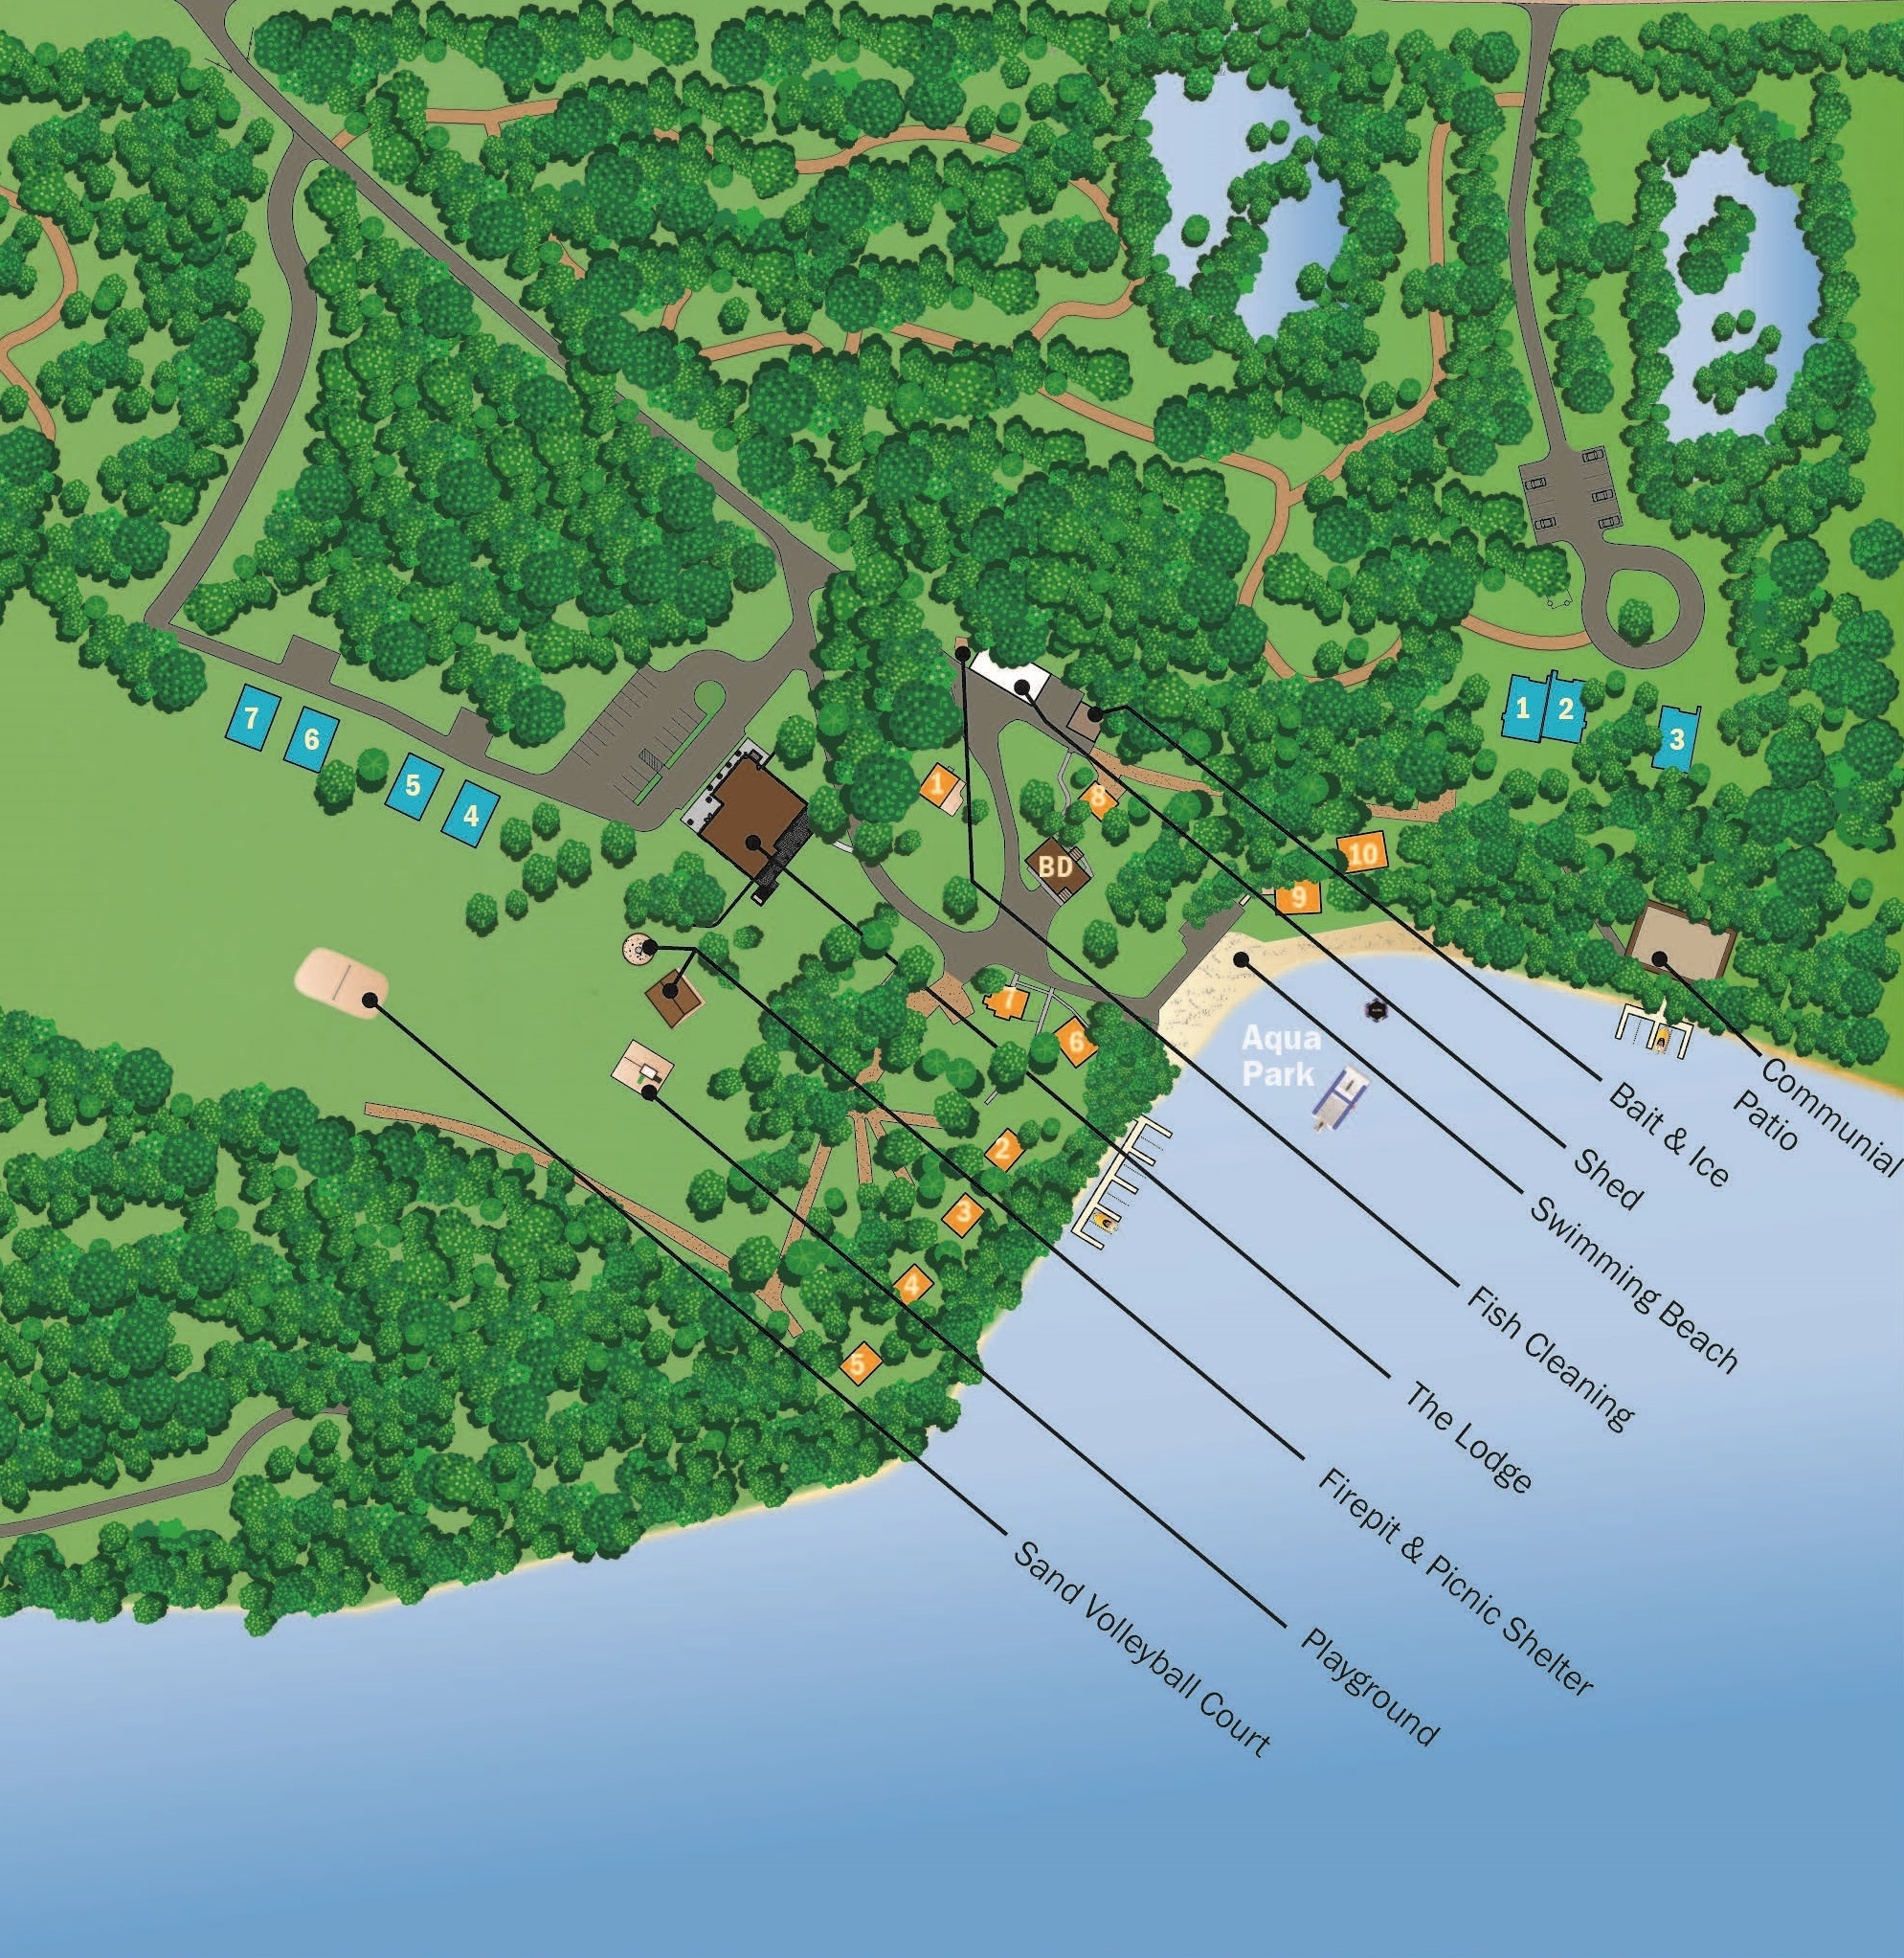 Sitemap: East Silent Resort